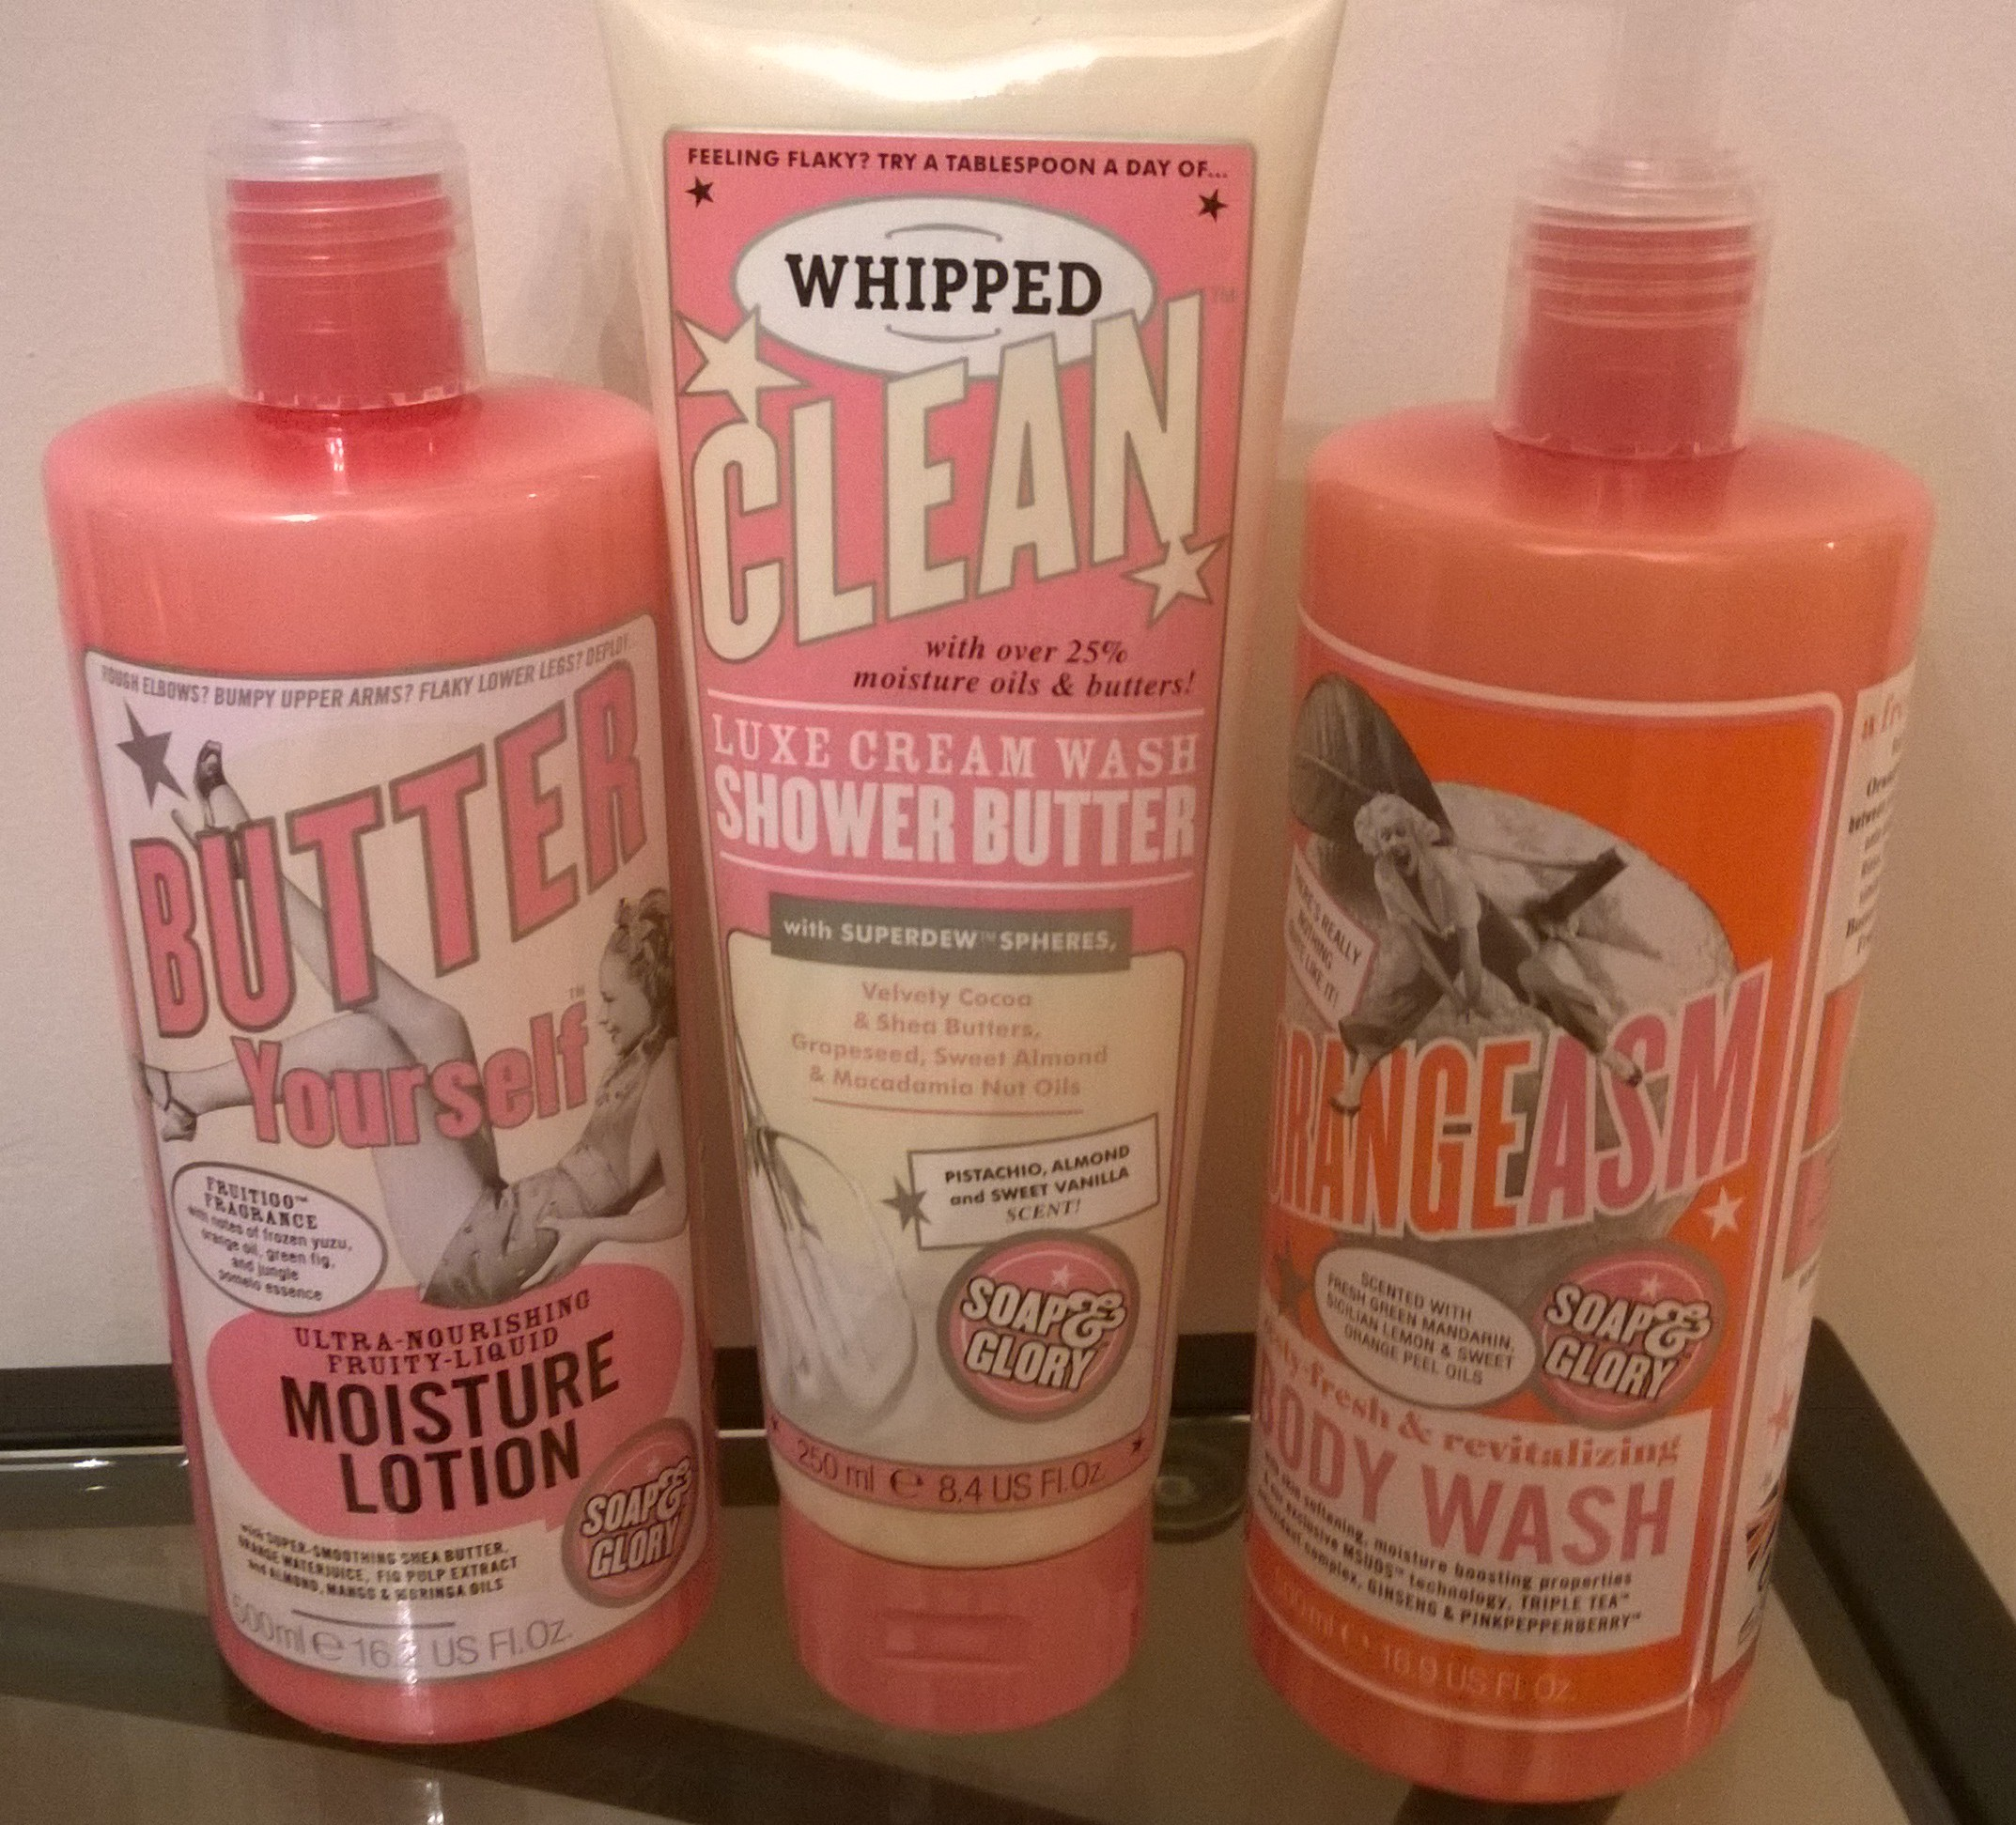 soap glory gift set the body products wp_20150106_006